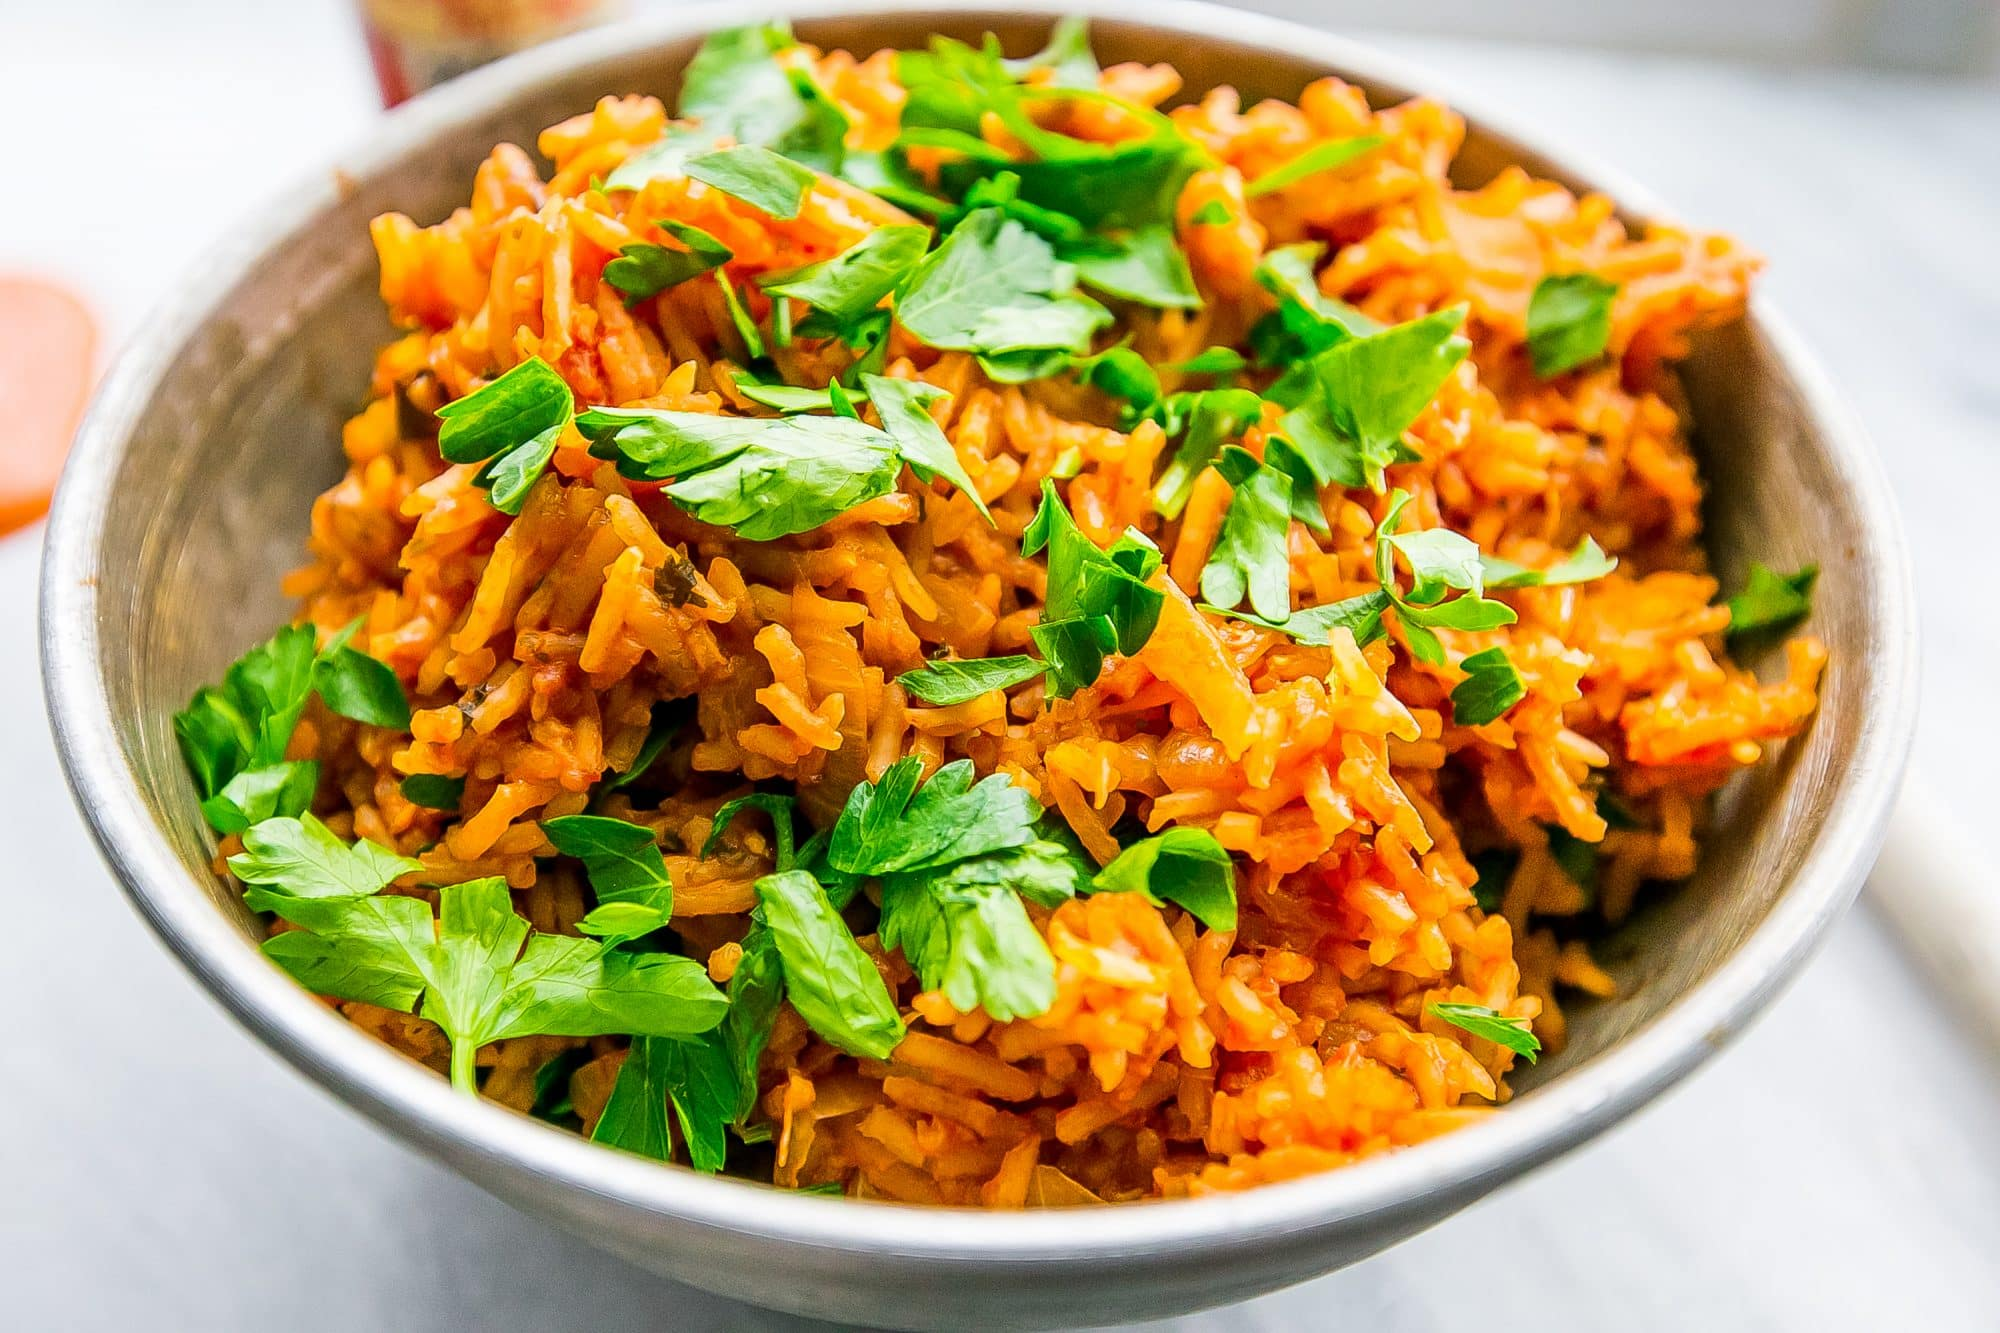 This knockoff nandos spicy rice is so easy and delicious!